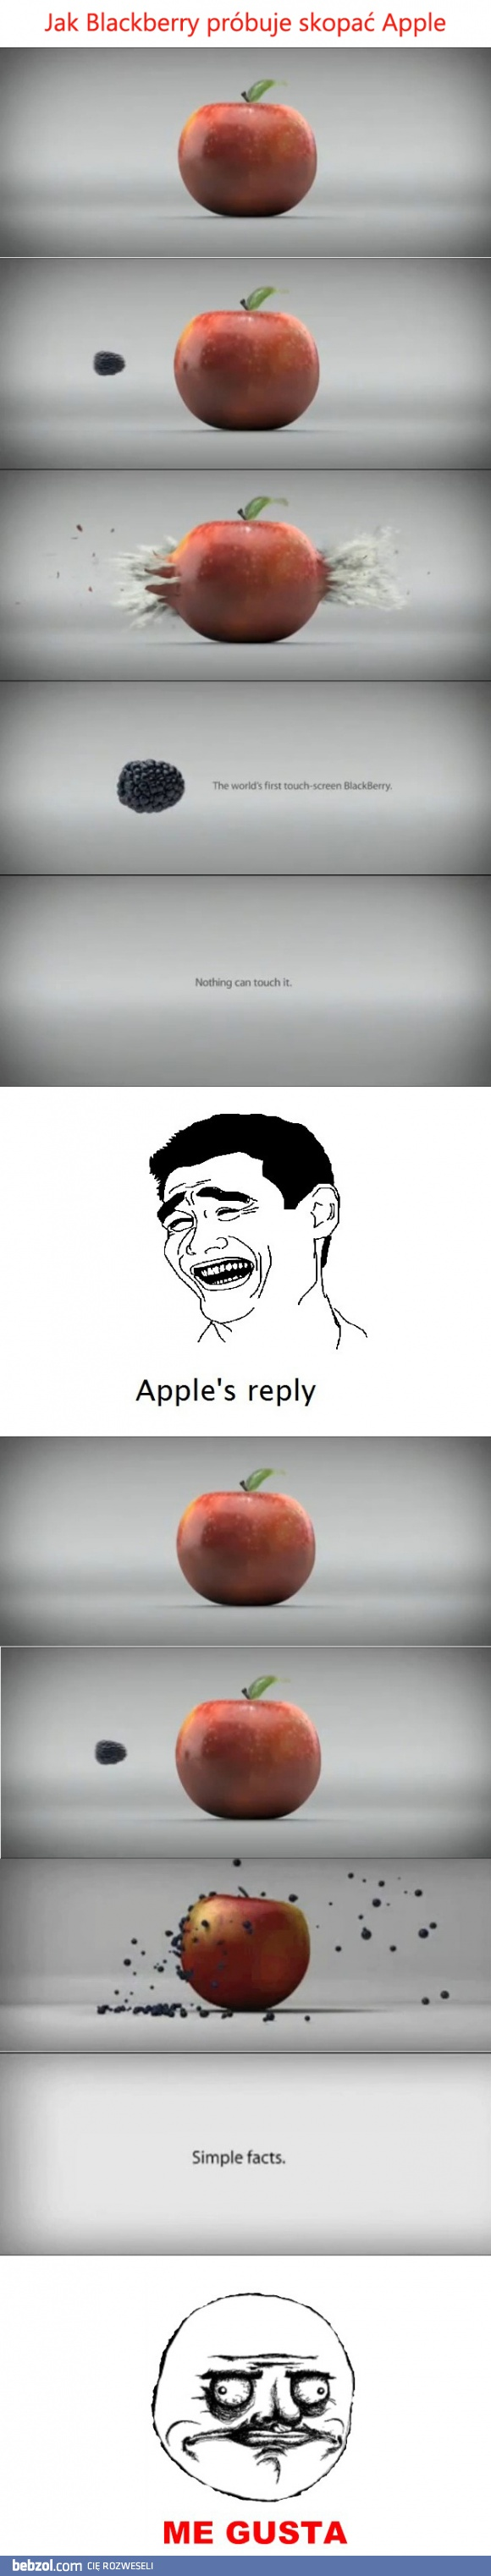 blackberry vs. apple